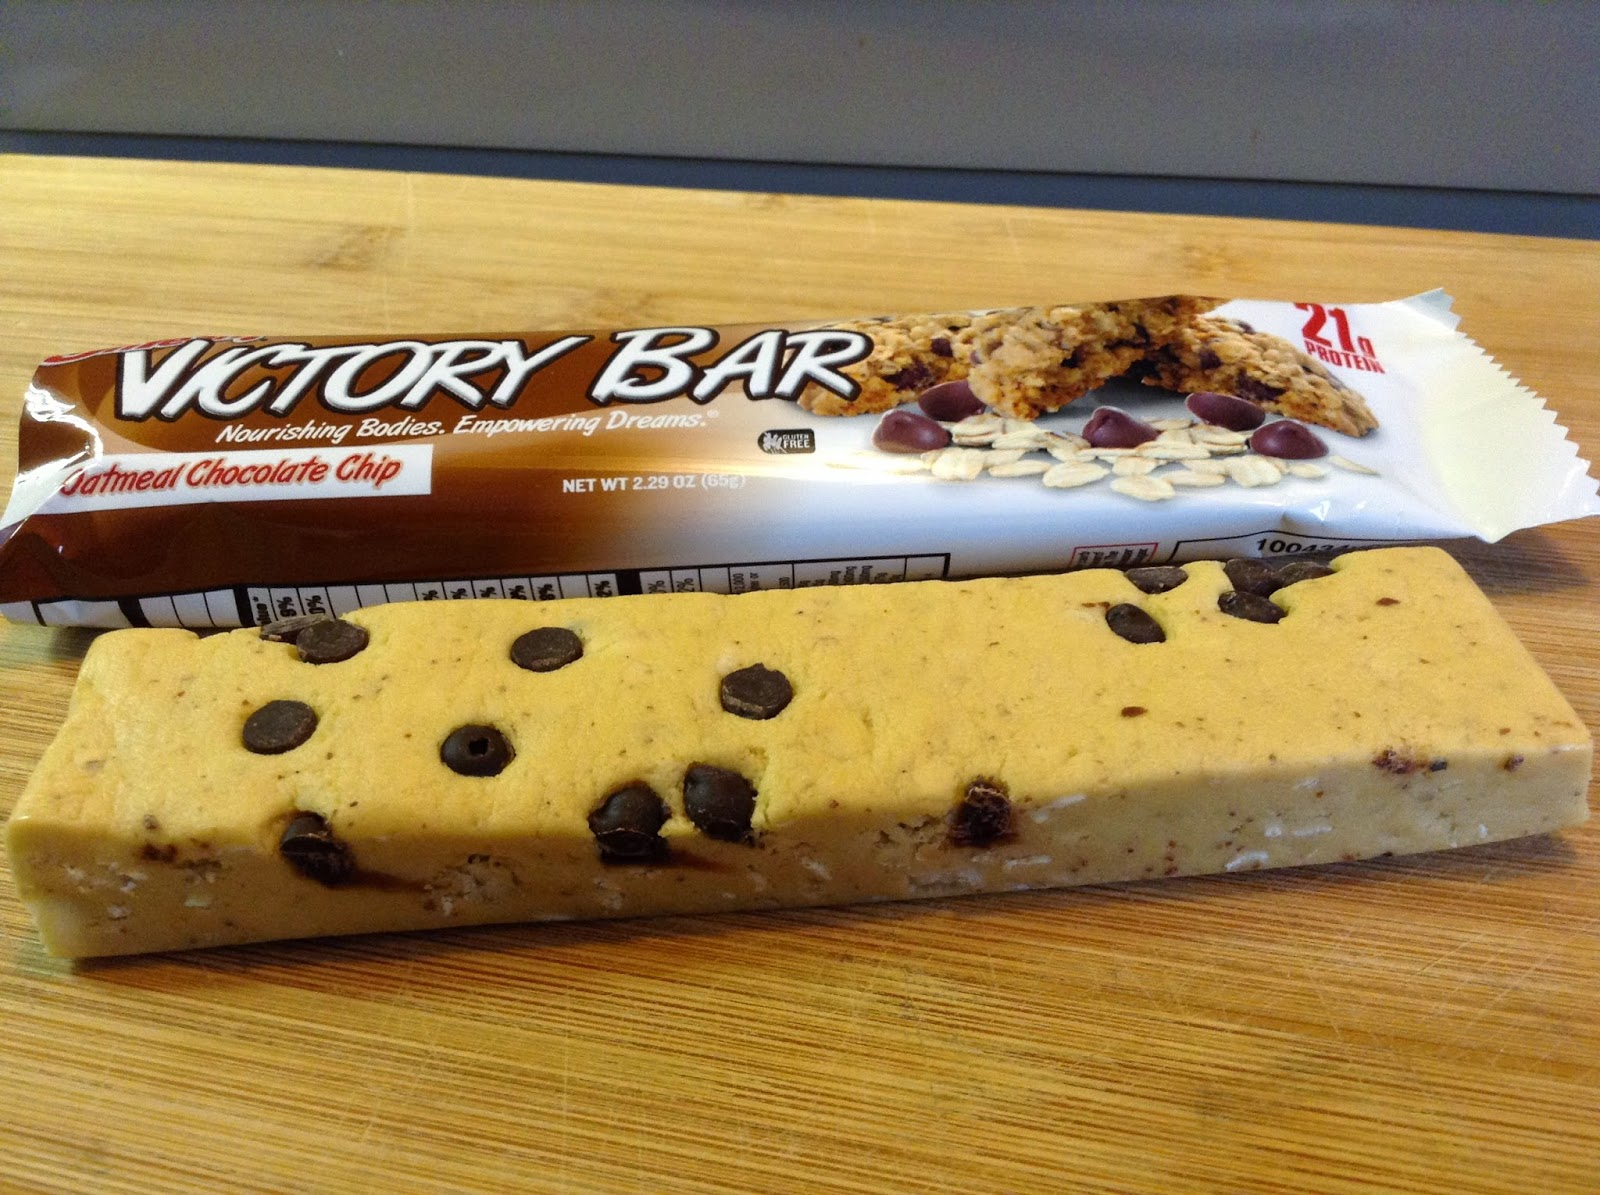 Bruises and Calluses: Victory bar Oatmeal Chocolate Chip Review